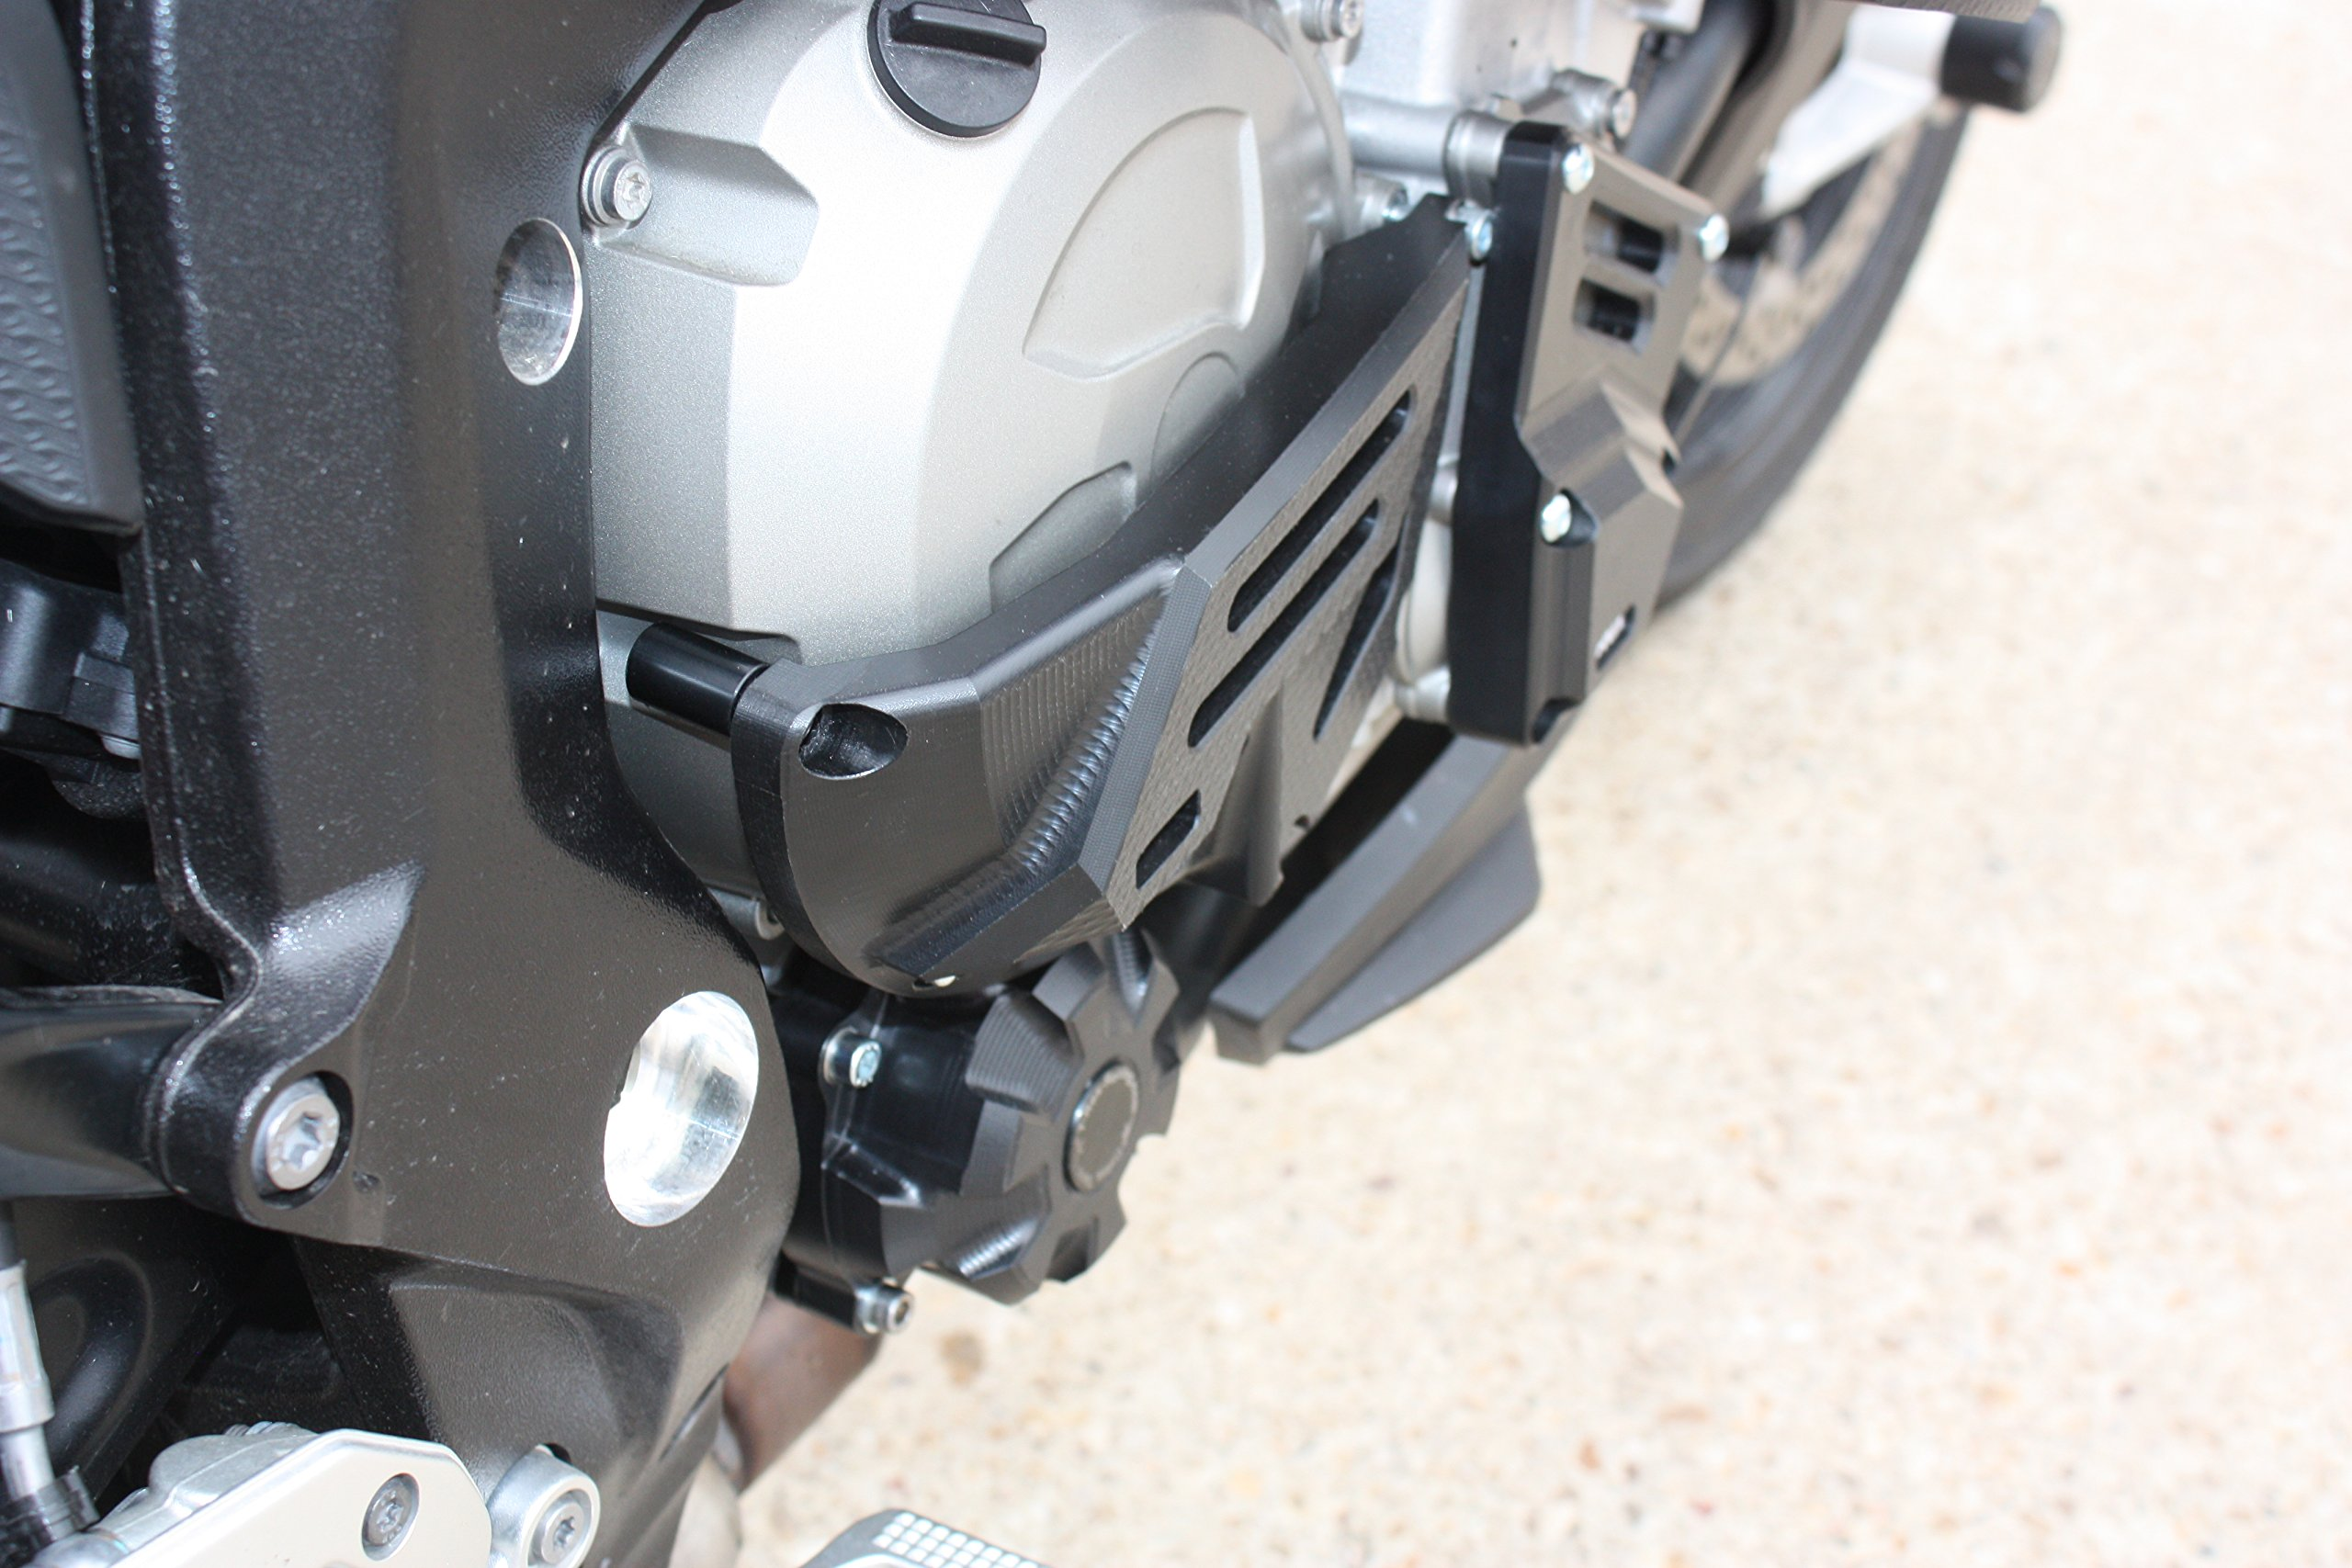 T-Rex Racing 2015 - 2017 BMW S1000XR Engine Stator Pump Case Covers by T-Rex Racing (Image #8)